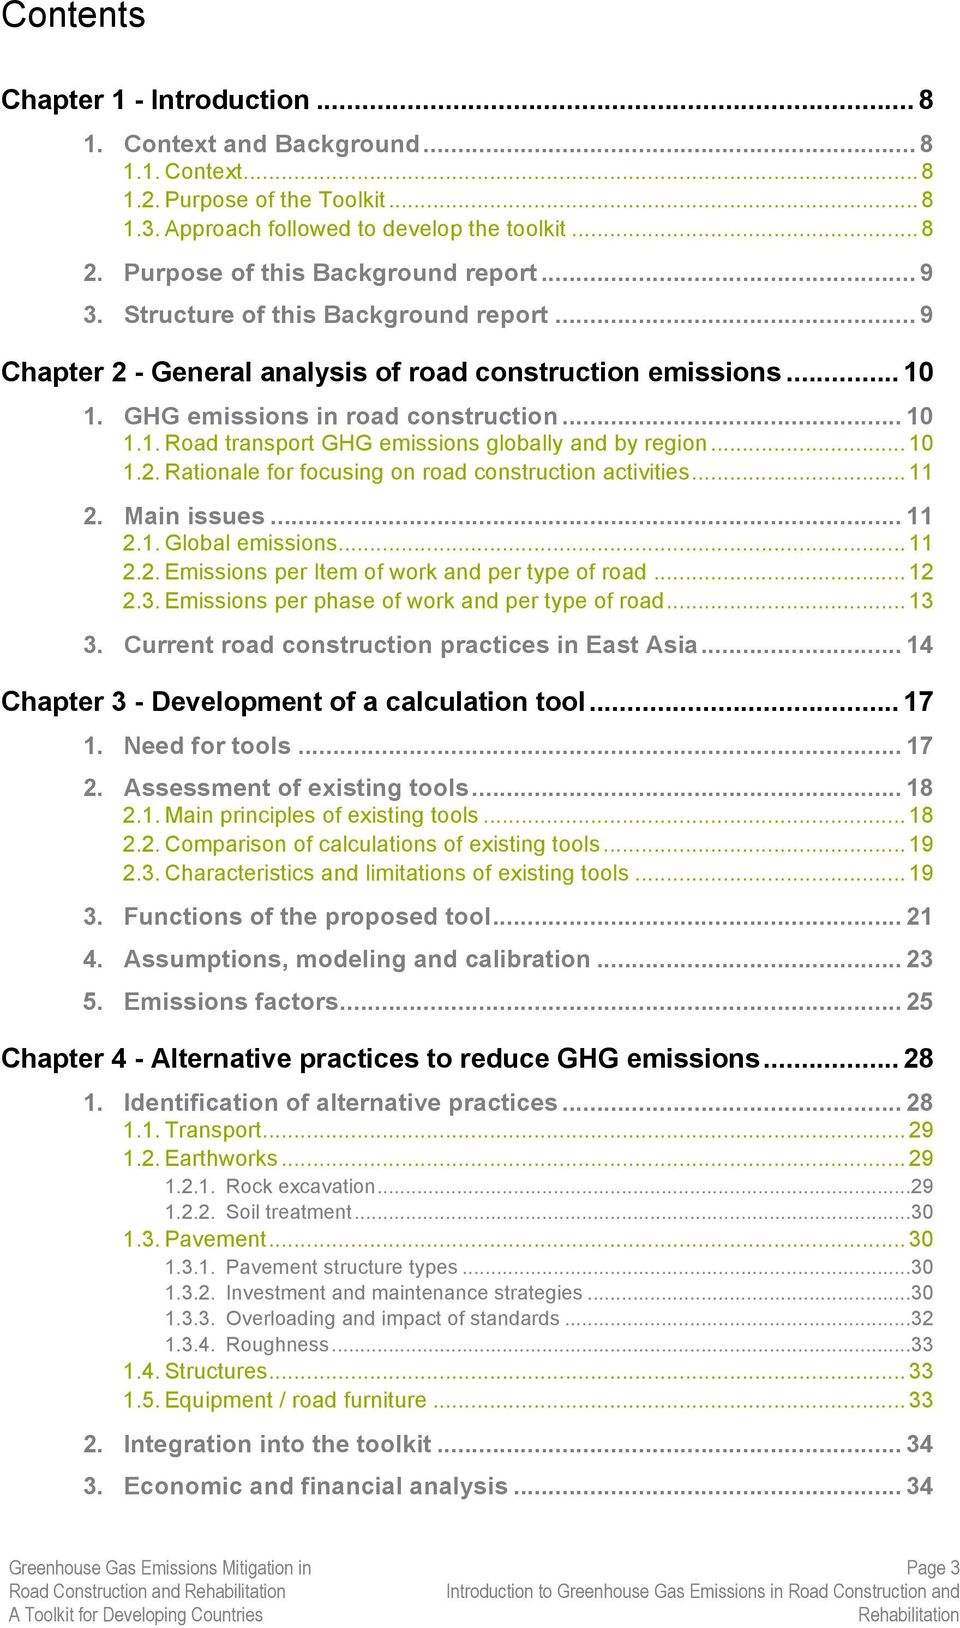 1. GHG emissions in road construction... 10 1.1. Road transport GHG emissions globally and by region...10 1.2. Rationale for focusing on road construction activities...11 2. Main issues... 11 2.1. Global emissions.